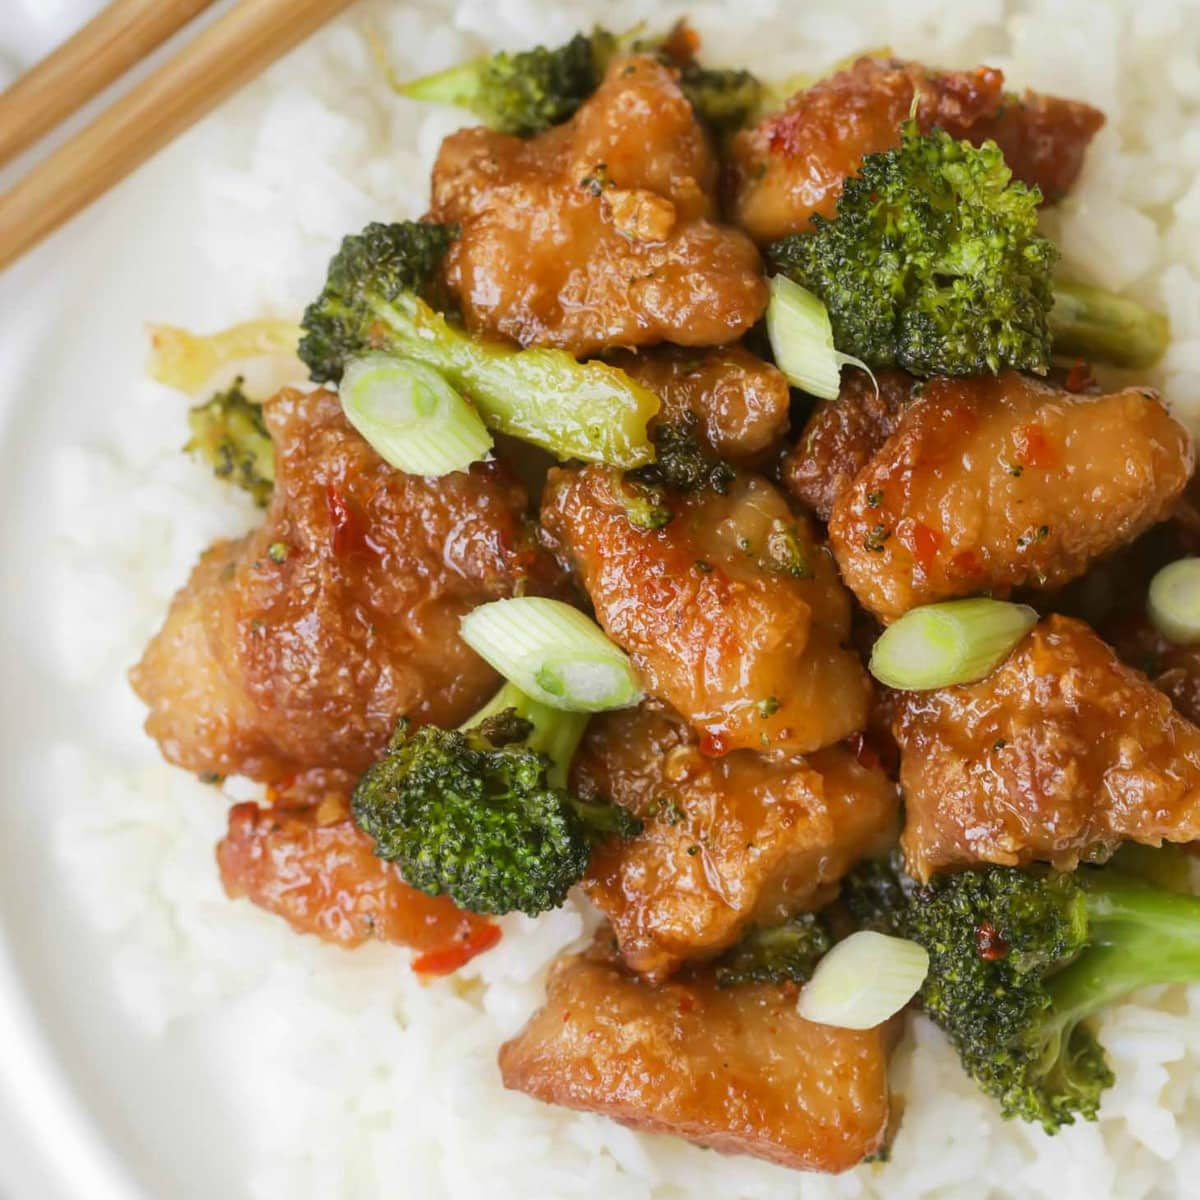 General Tso chicken with broccoli served over white rice on white plate